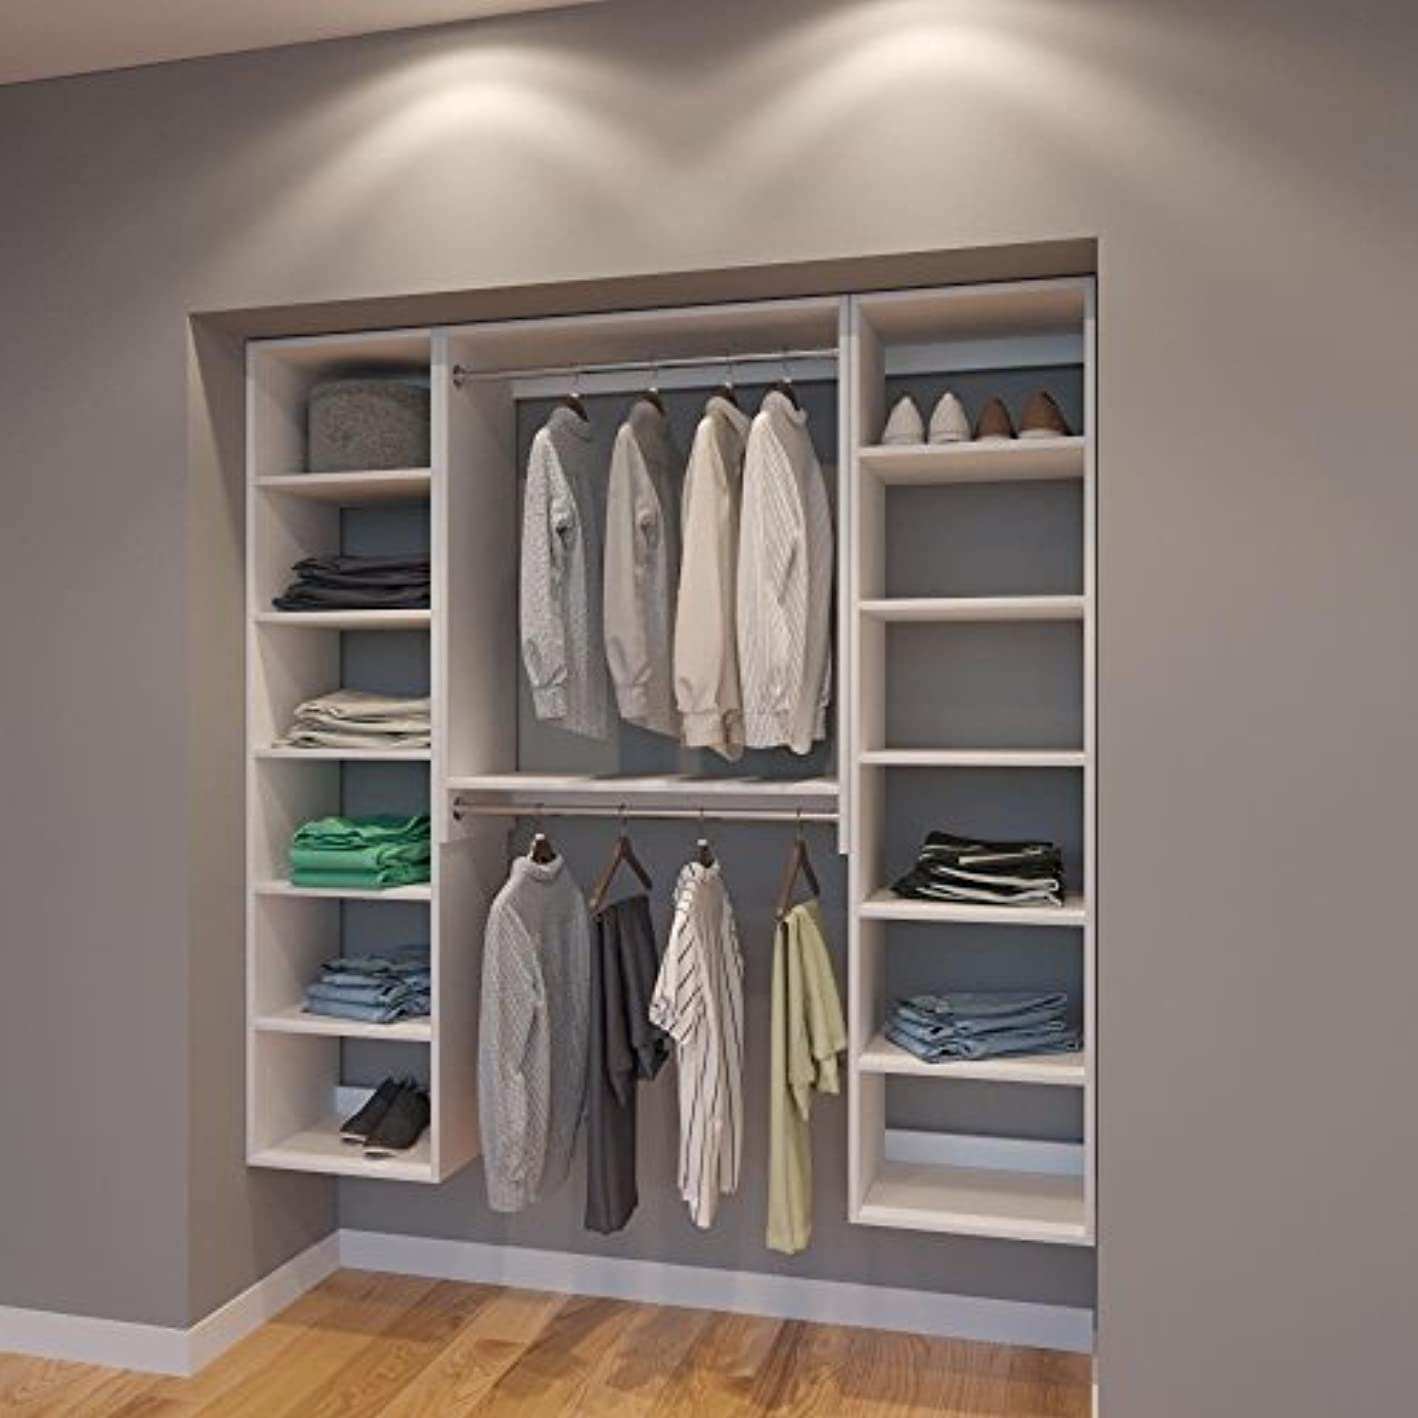 Modular Closets 6 FT Closet Organizer System - 72 inch - Style G